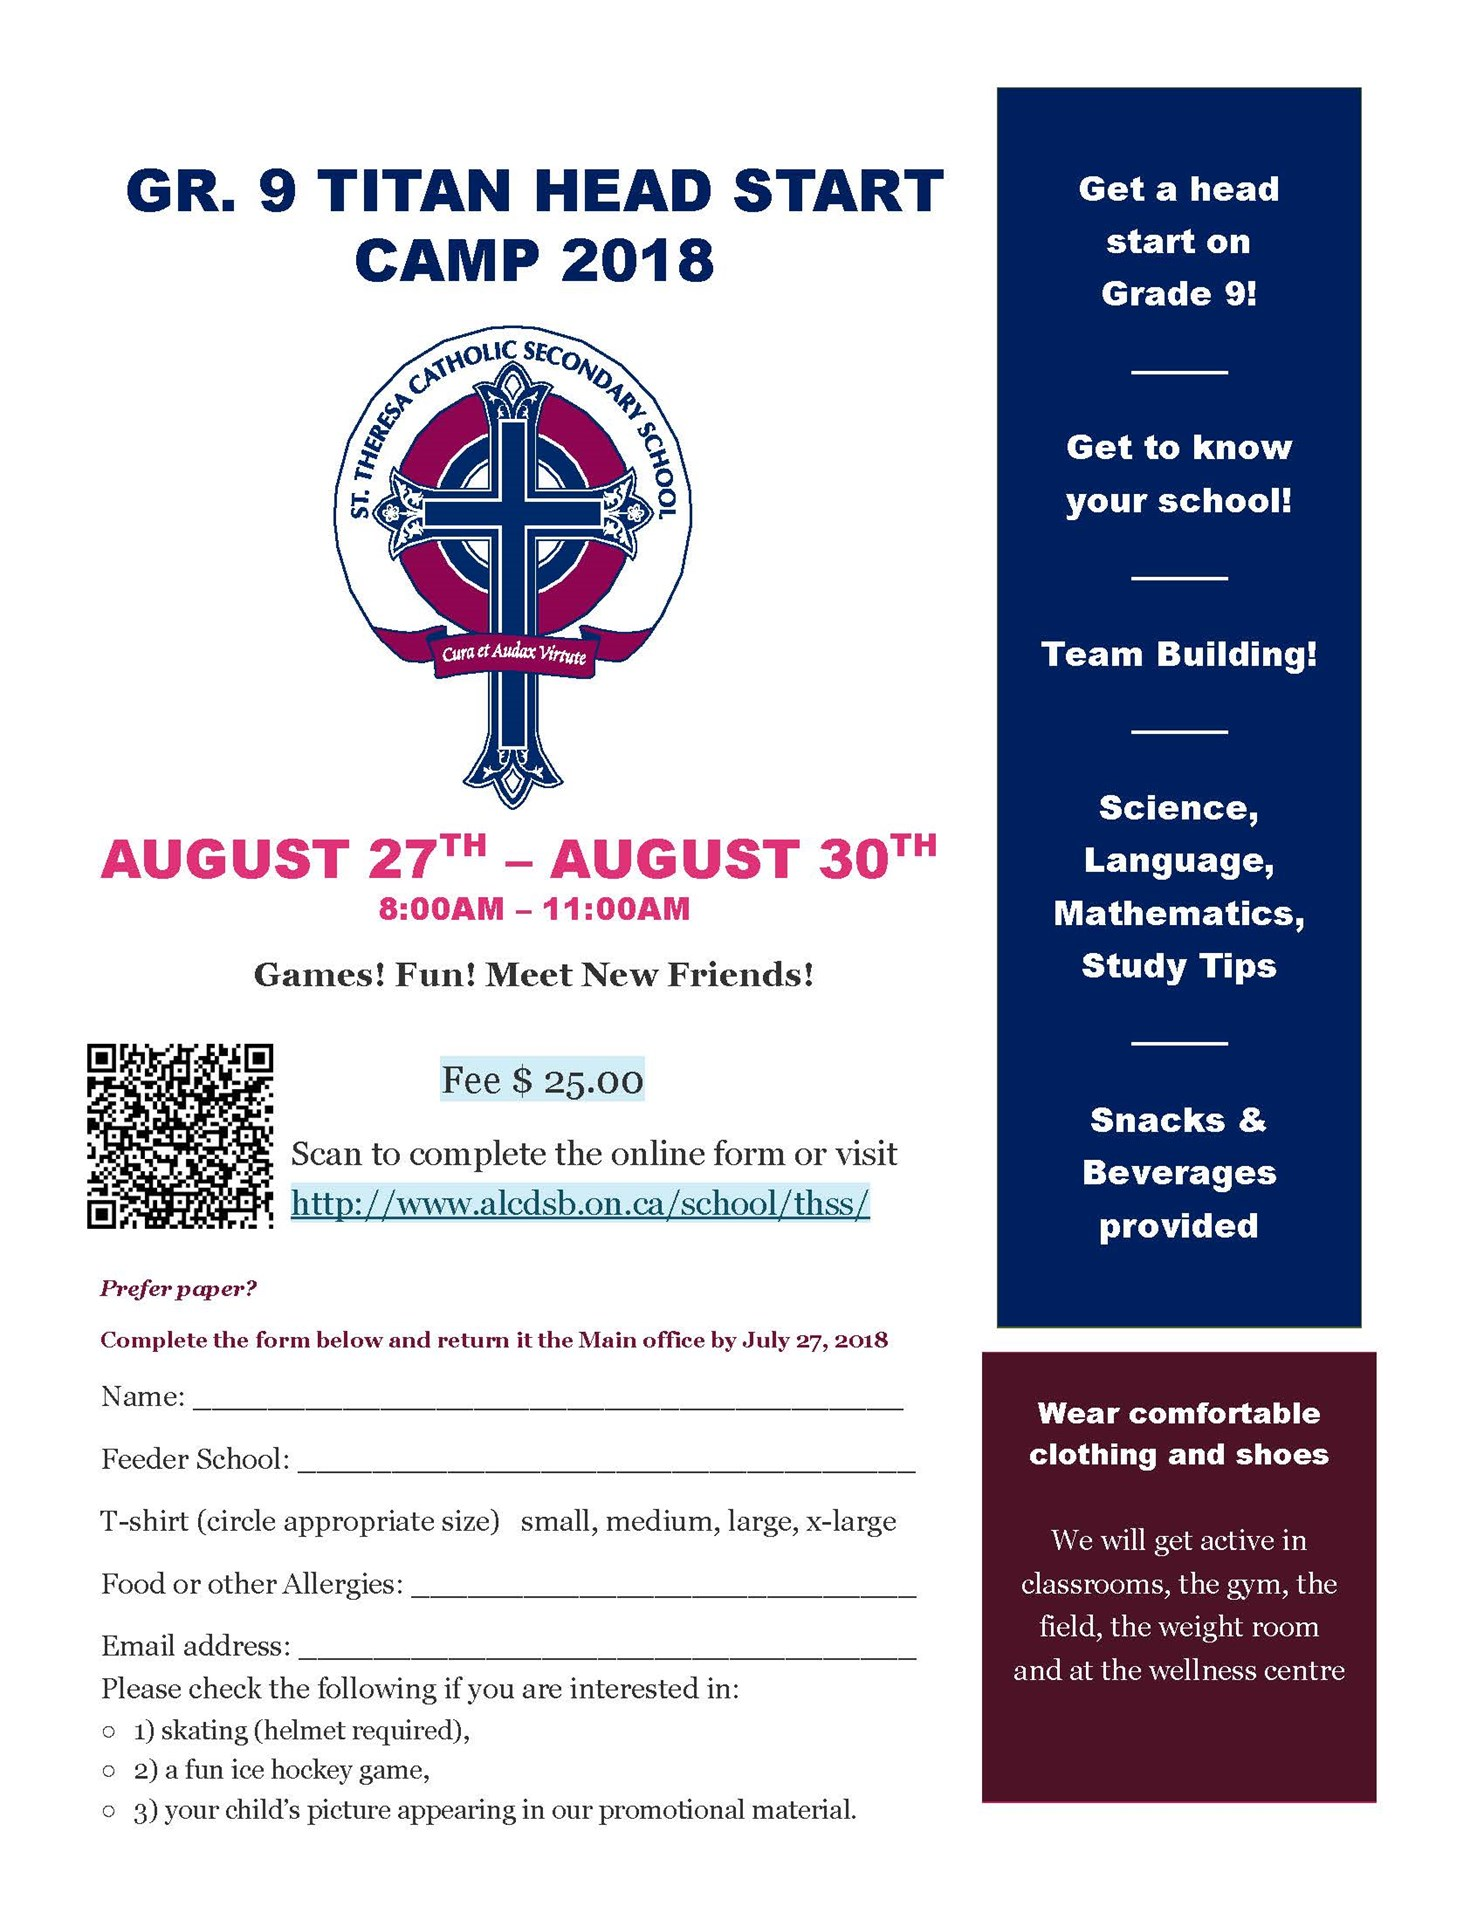 Titan Head start 2018 Summer Camp Flier1.jpg